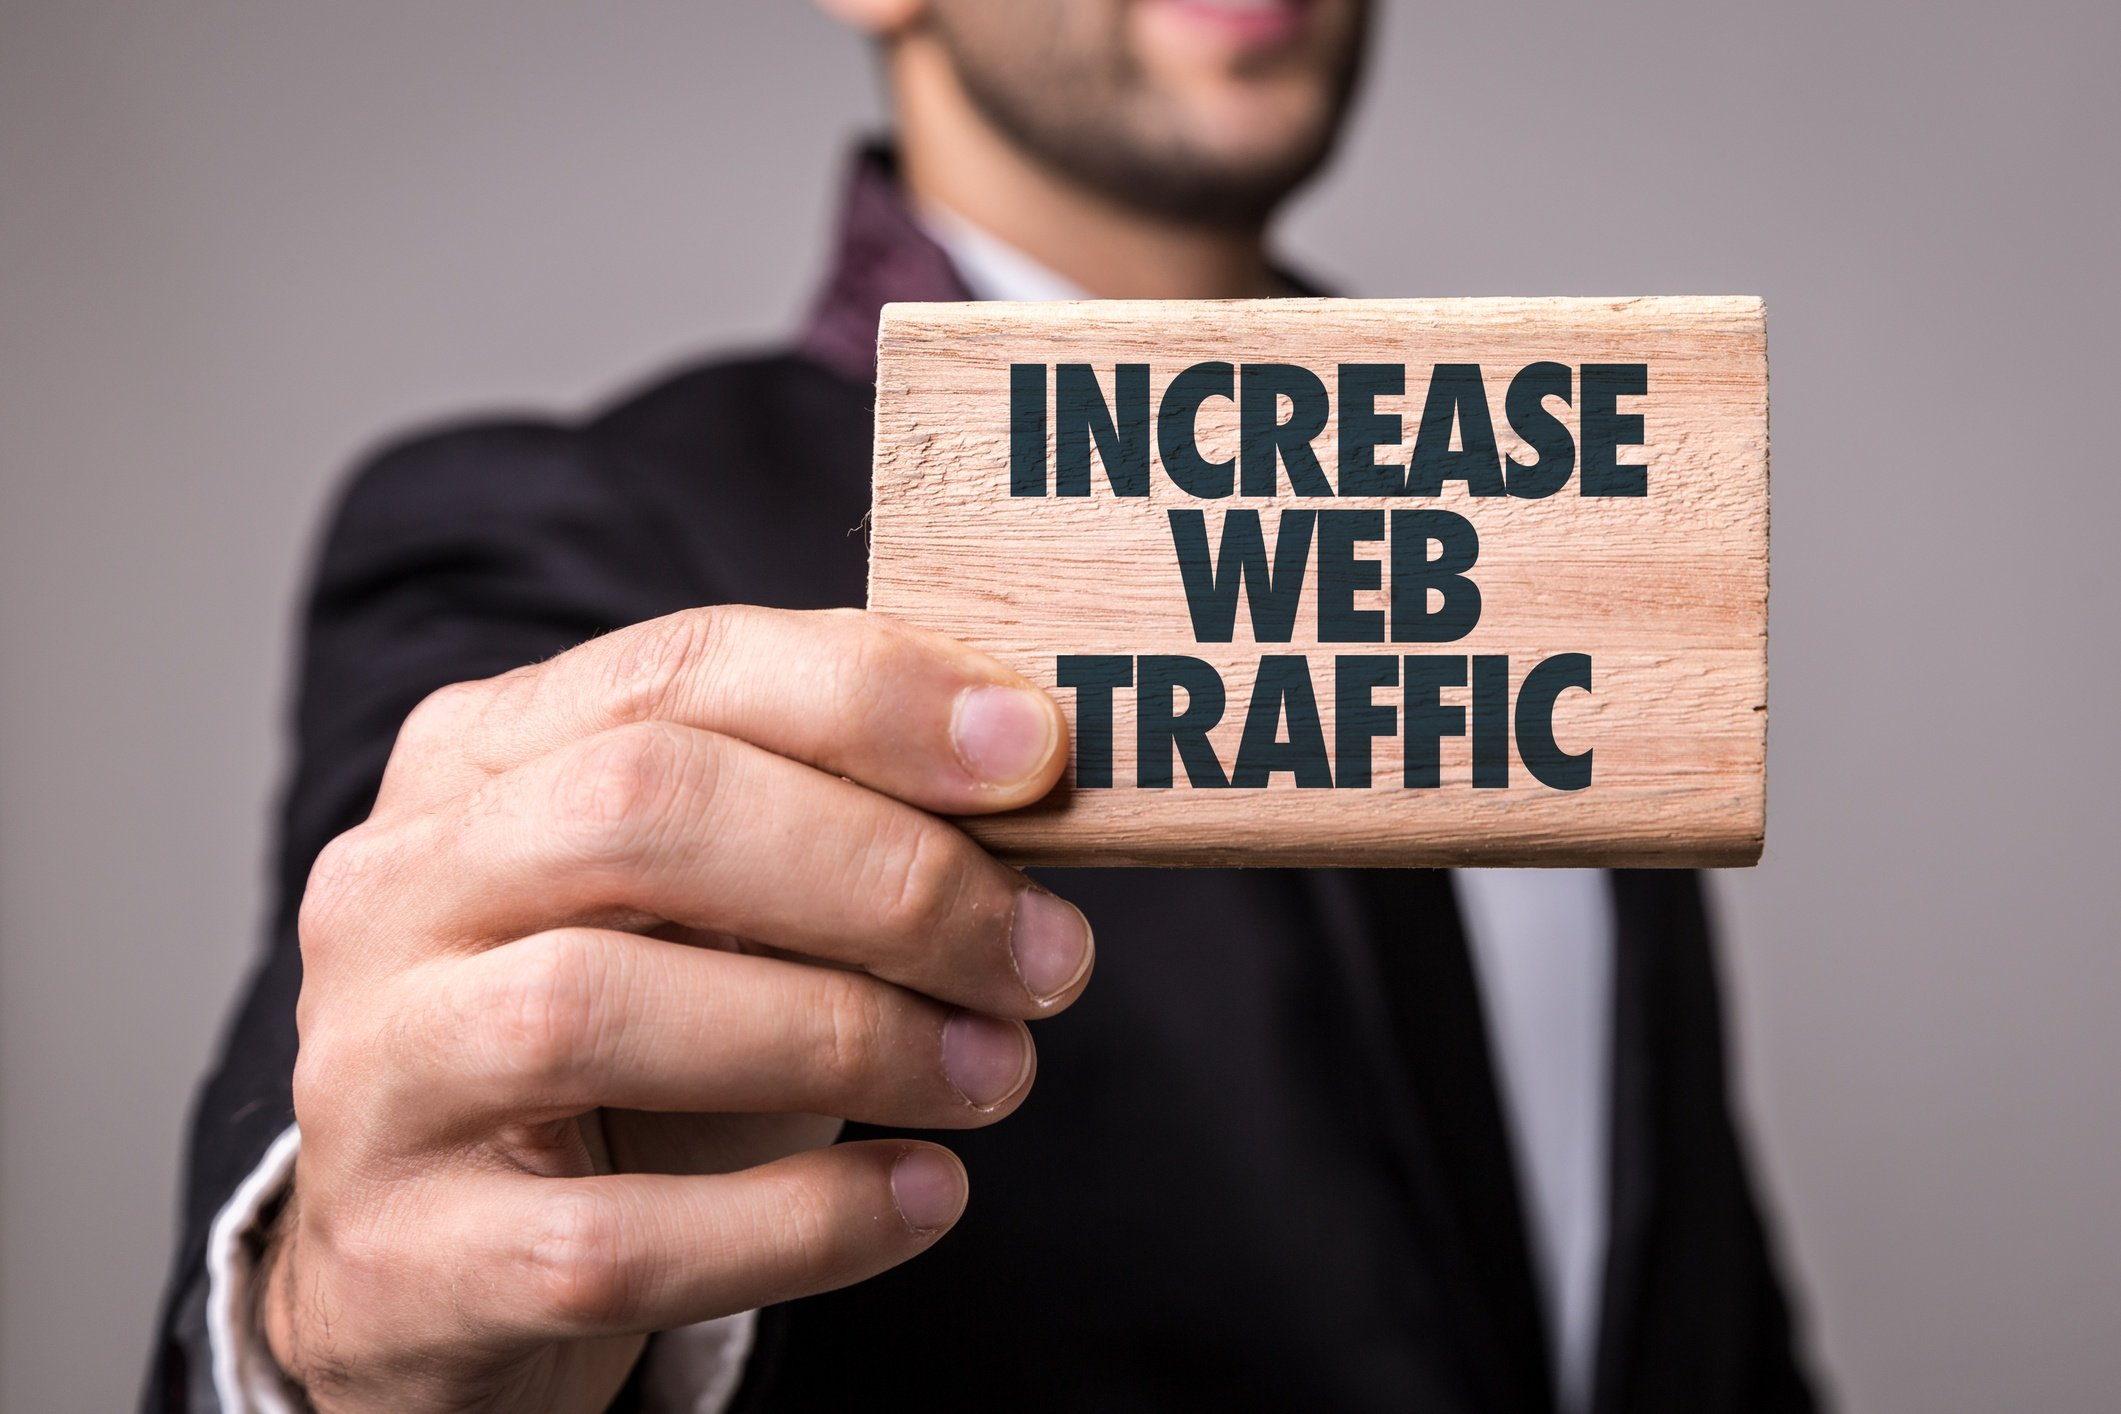 10-of-the-best-ways-to-increase-website-traffic.jpg